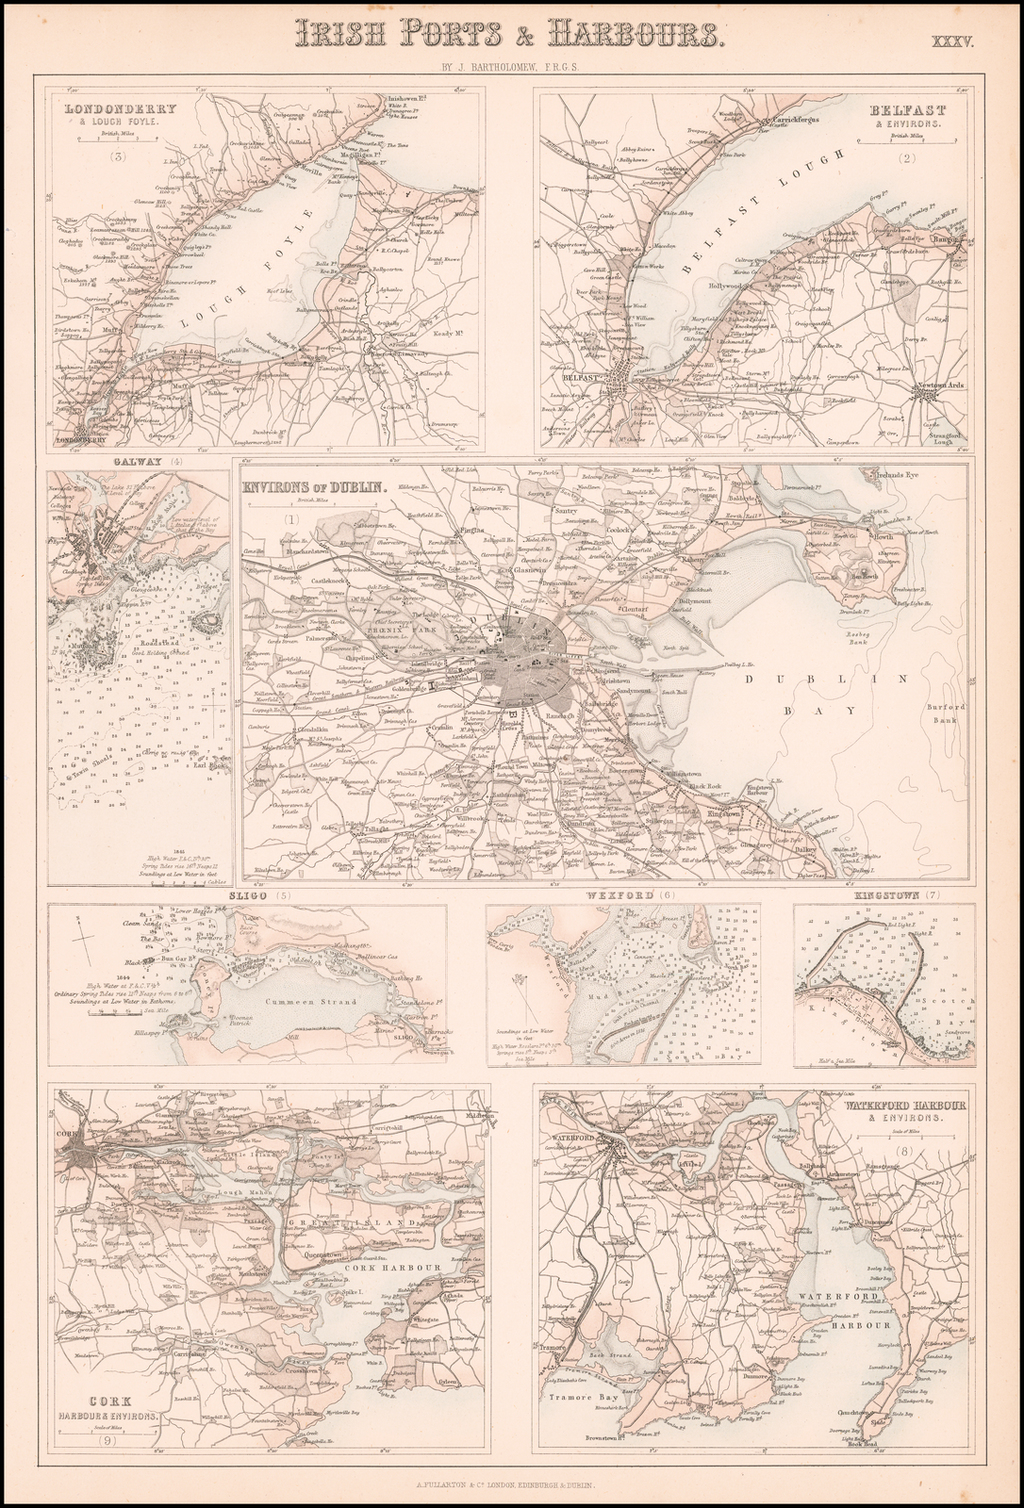 Irish Ports and Harbours (Dublin, Belfast, Londonderry, Galway, Sligo, Wexford, Kingstown, Cork and Waterford) By Archibald Fullarton & Co.